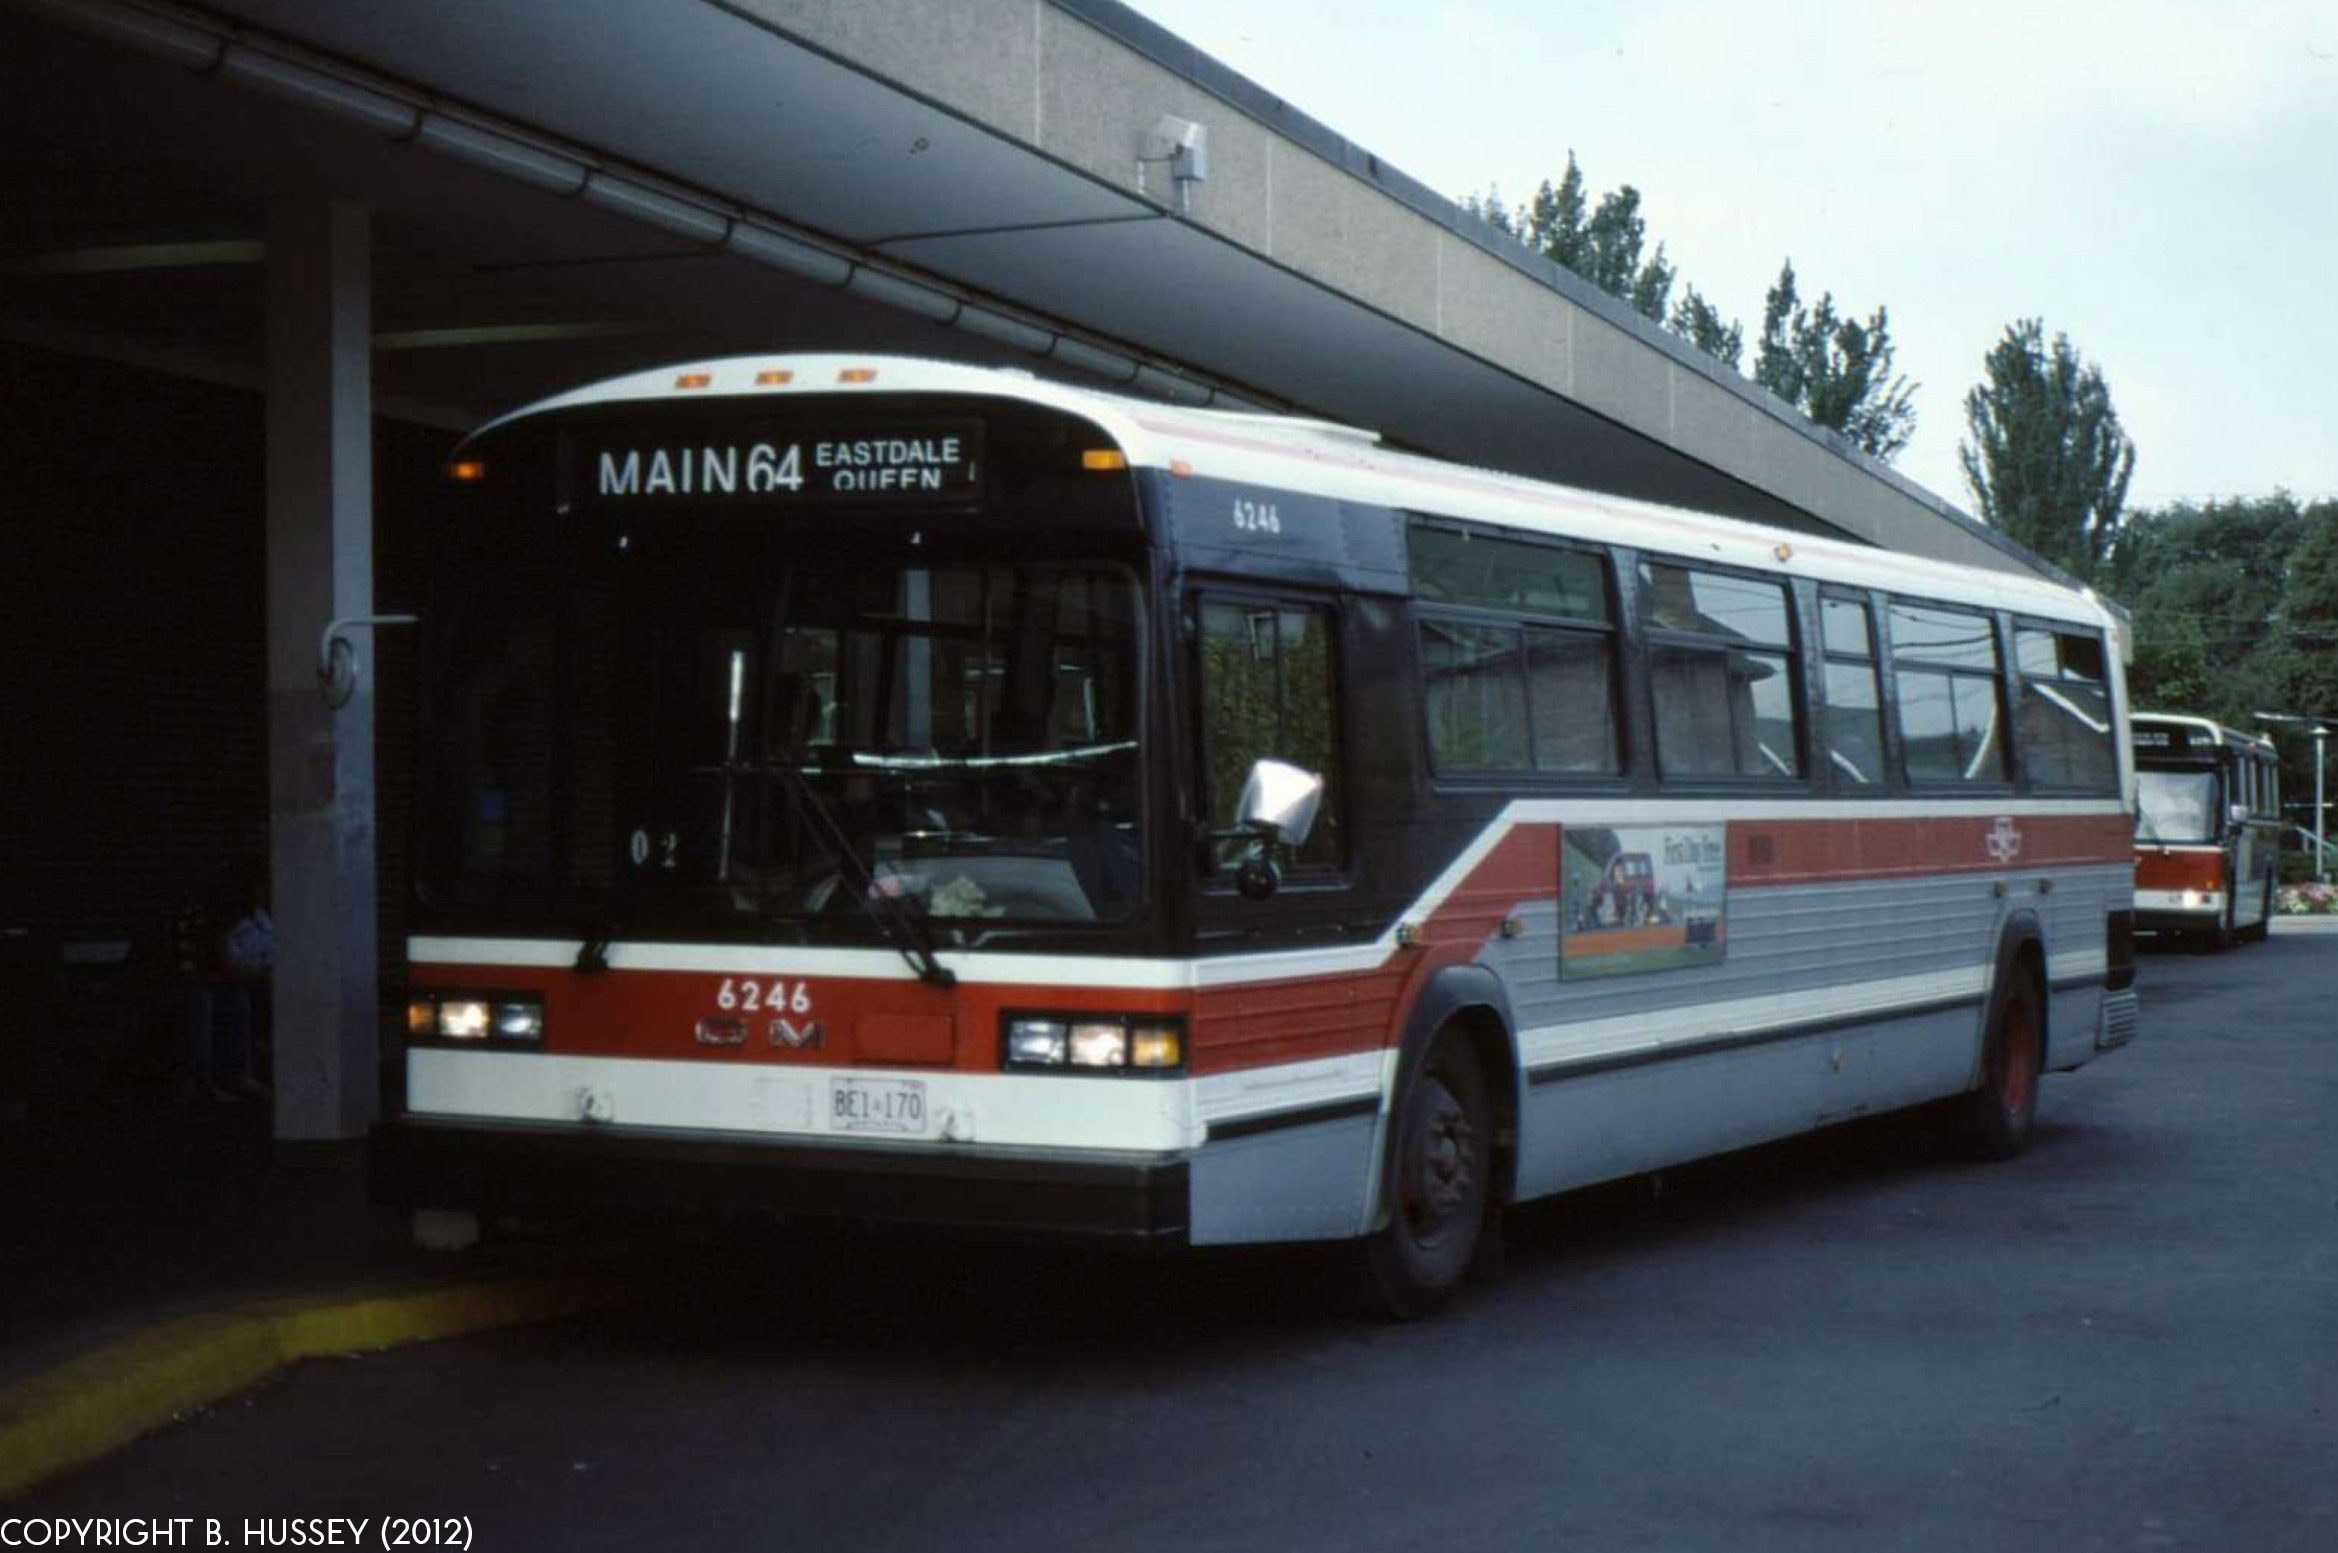 TTC GM Classic #6246 waits at Main Street station in service on 64 ...